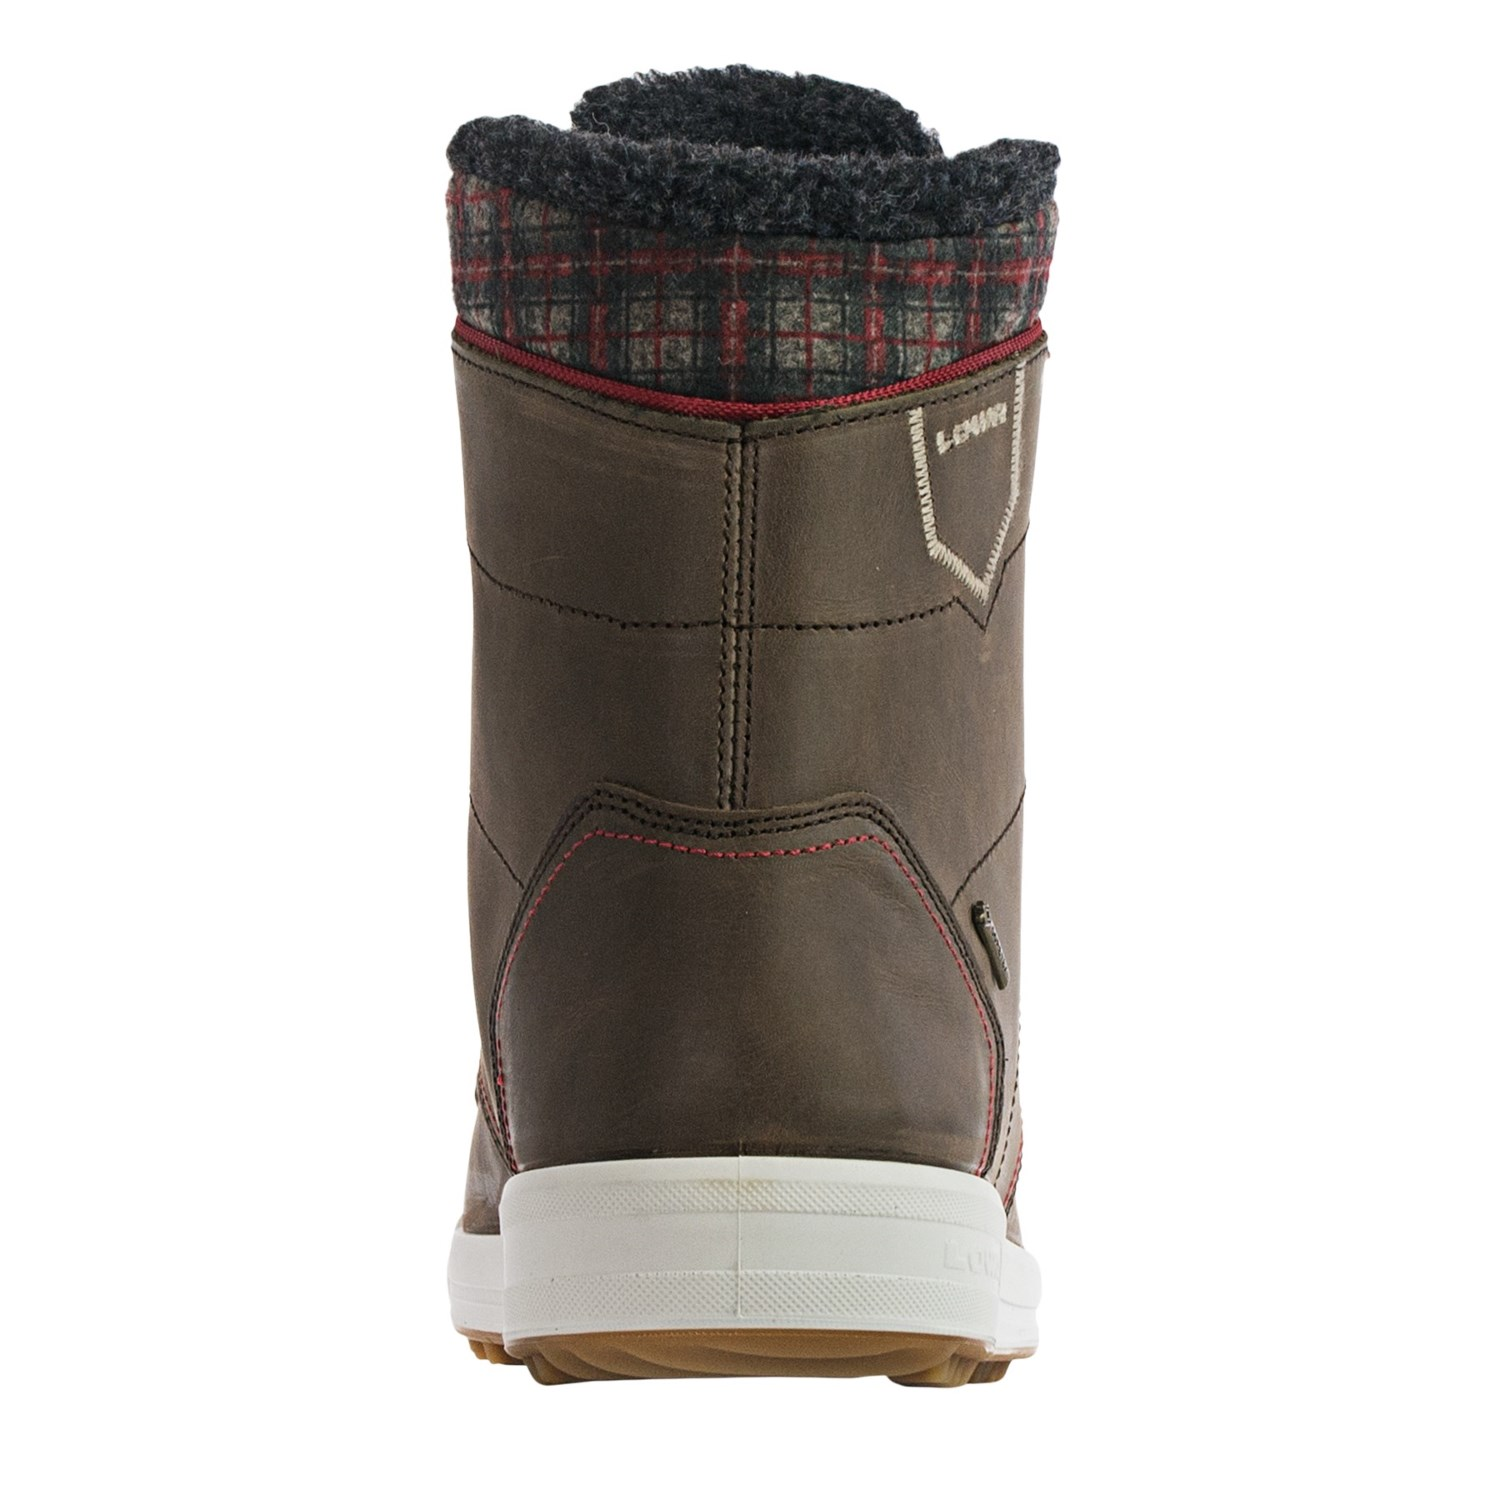 Lowa Glasgow Gore-Tex® Mid-Winter Snow Boots (For Men